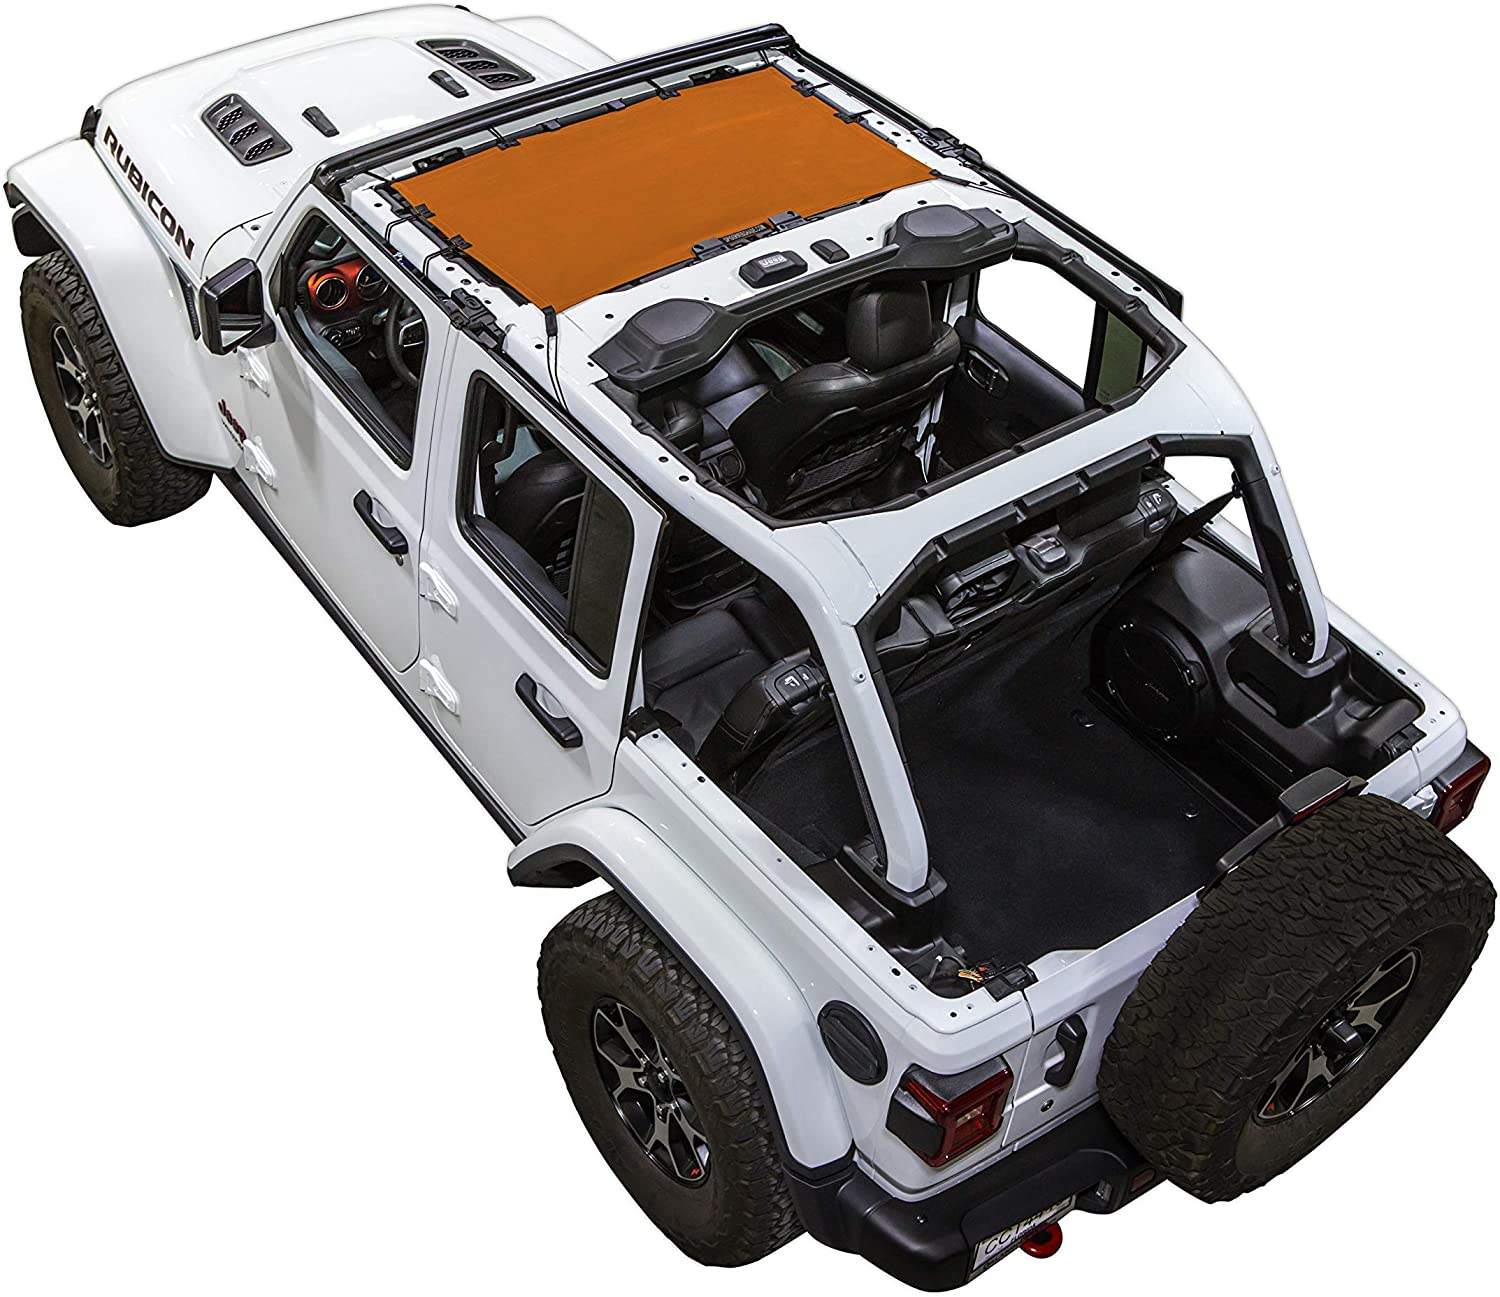 2018 - current in Green SPIDERWEBSHADE Jeep Wrangler JLKini Mesh Shade Top Sunshade UV Protection Accessory USA Made with 5 Year Warranty for Your JL 2-Door and JLU 4-Door